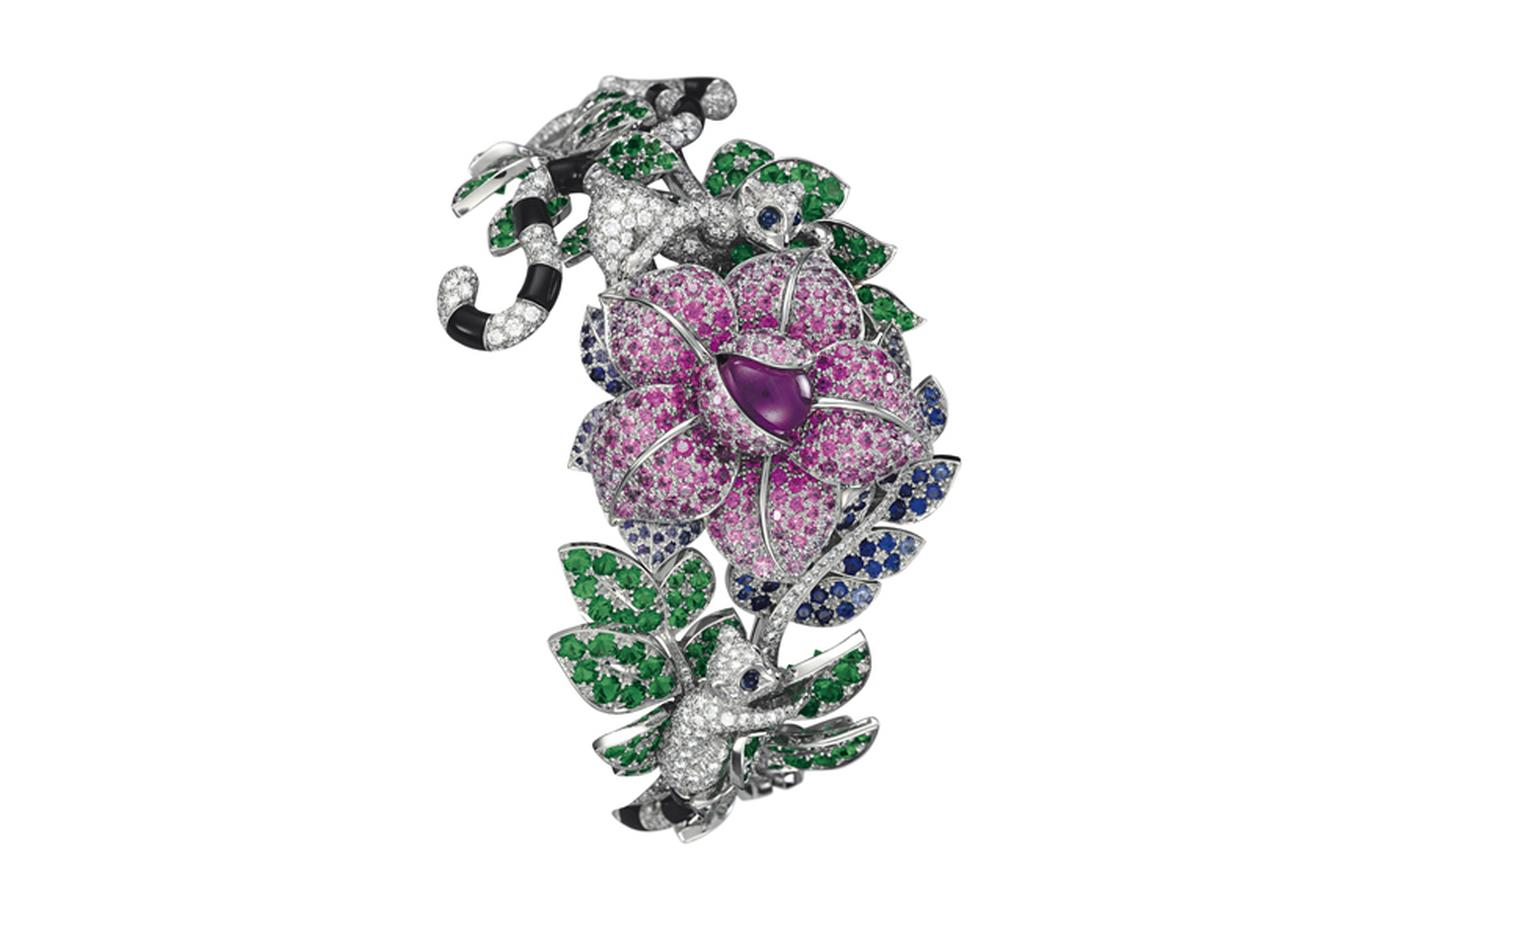 Van Cleef & Arpels Les Voyages Extraordinaires High Jewellery Timepieces Decor Makis, closed